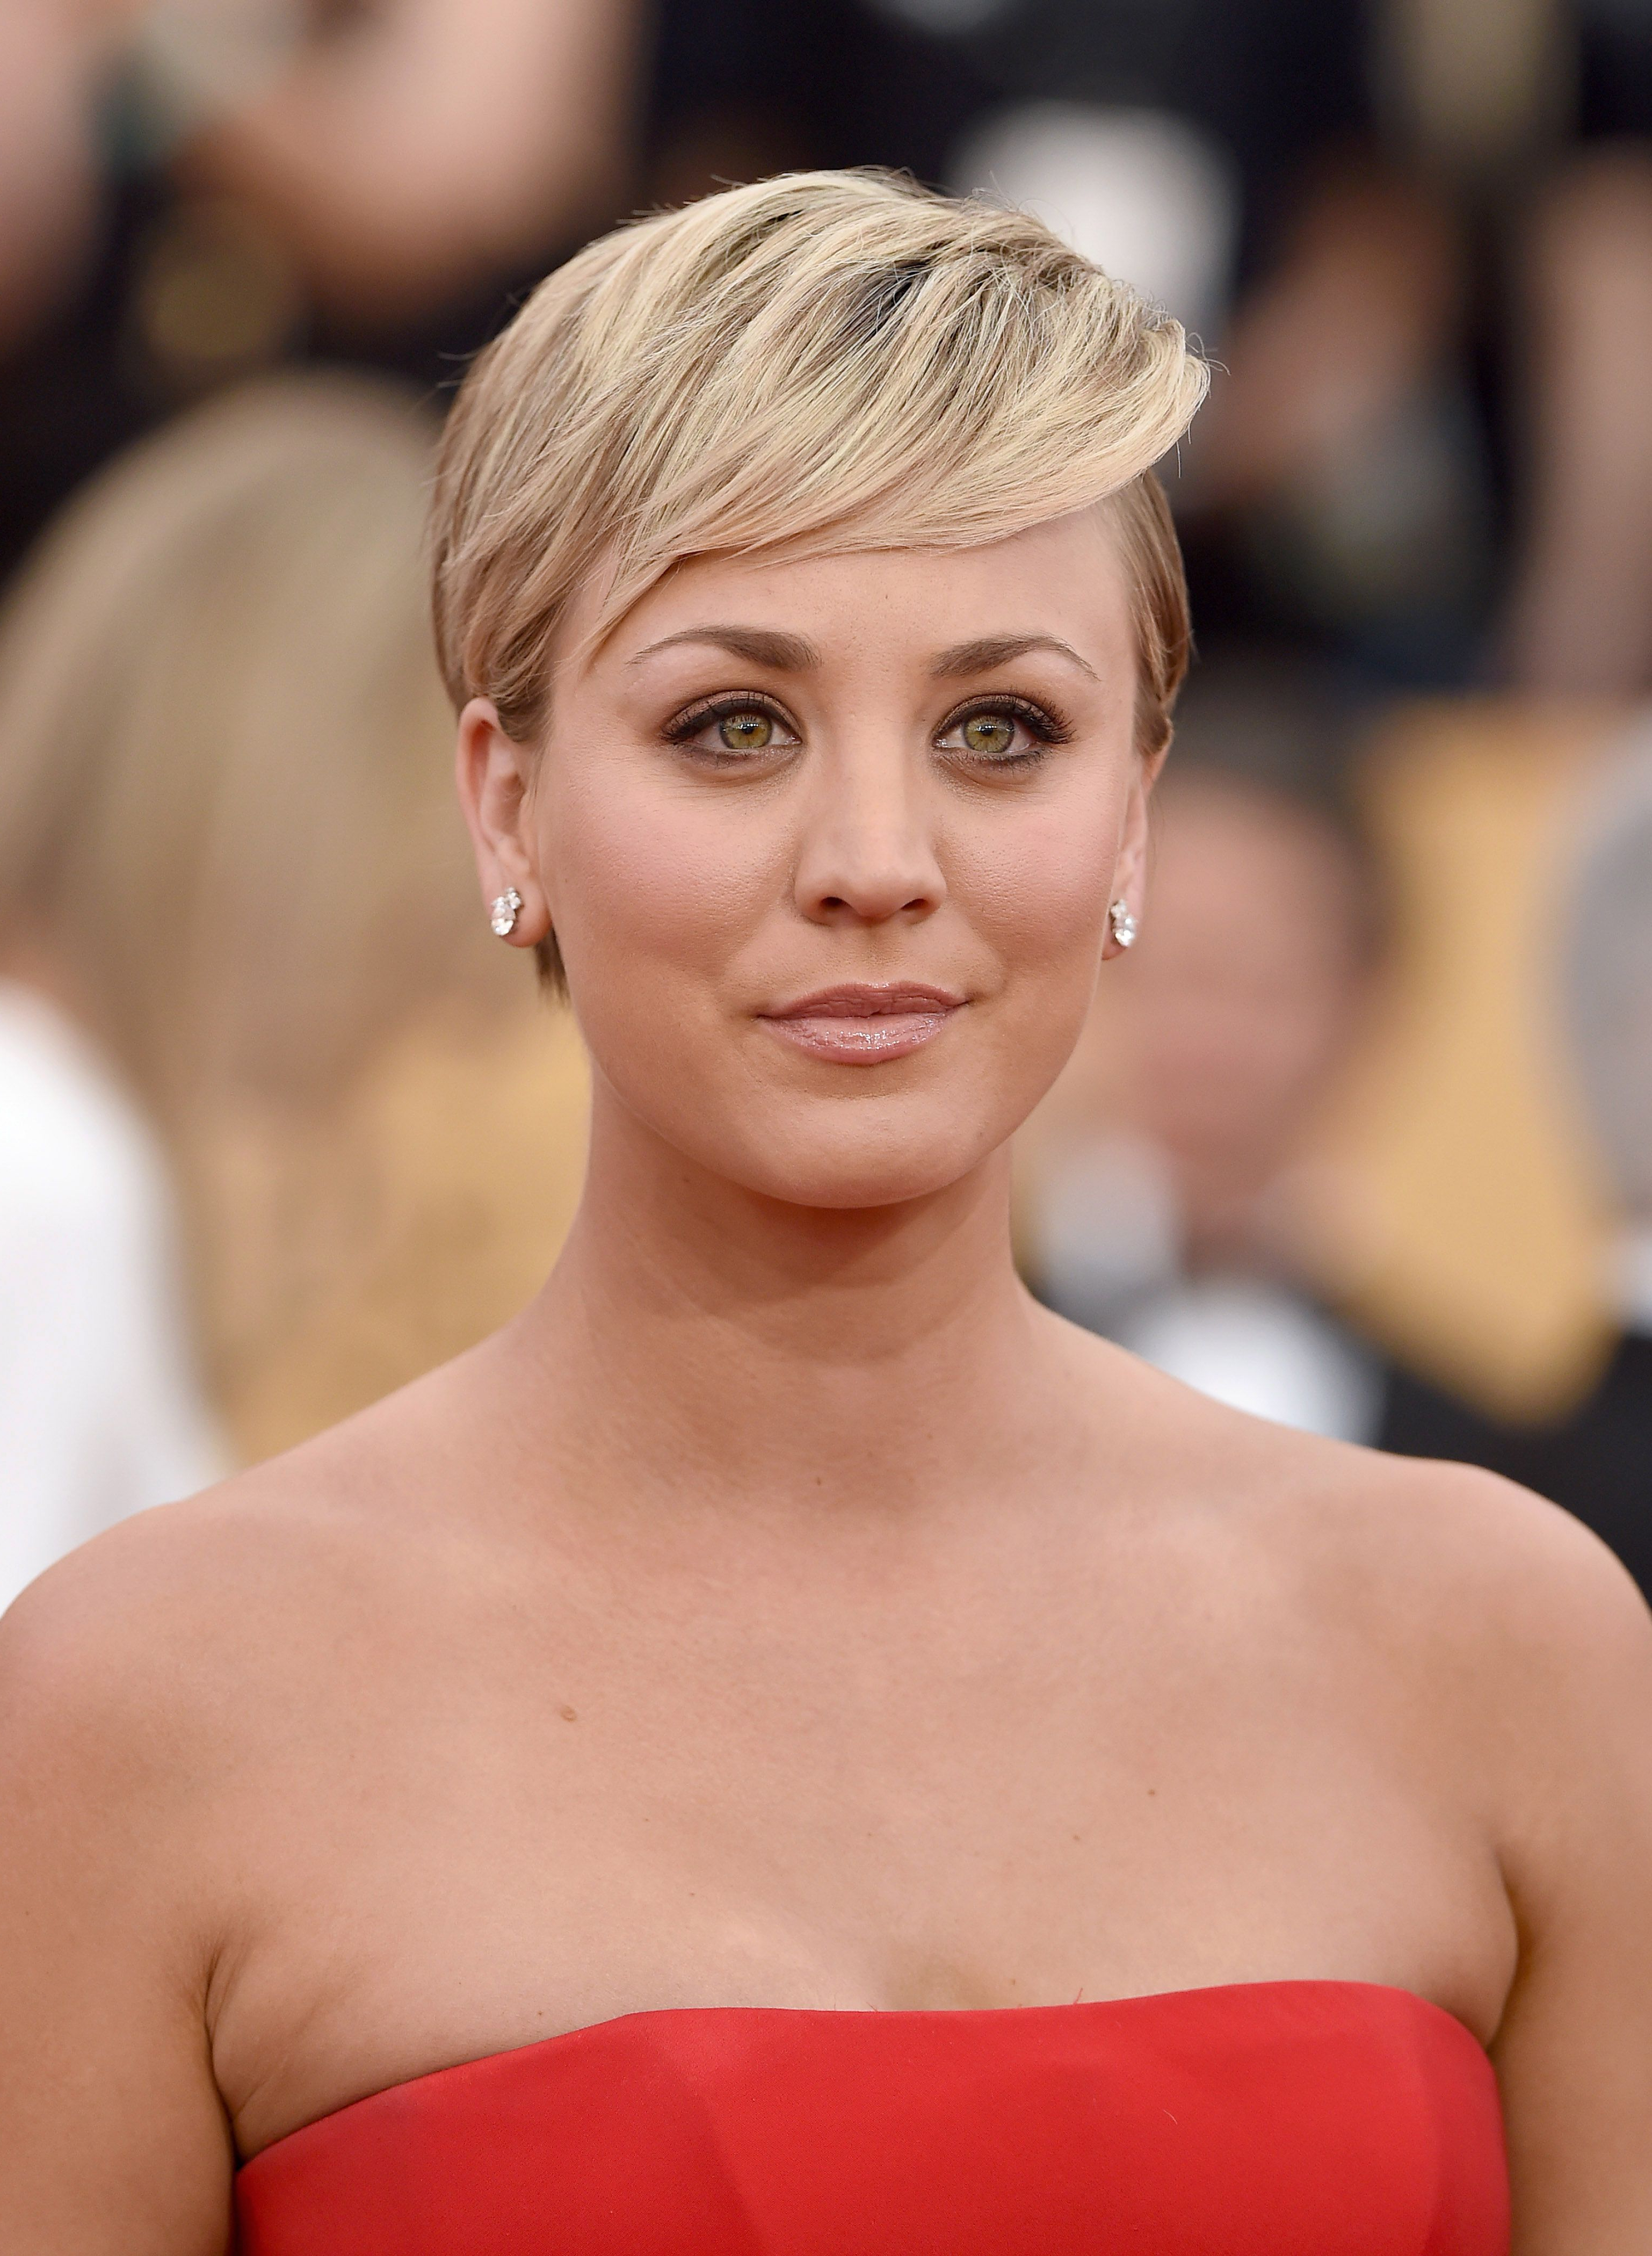 40 Best Short Pixie Cut Hairstyles 2018 – Cute Pixie Haircuts For Women Regarding Kaley Cuoco Short Hairstyles (View 24 of 25)